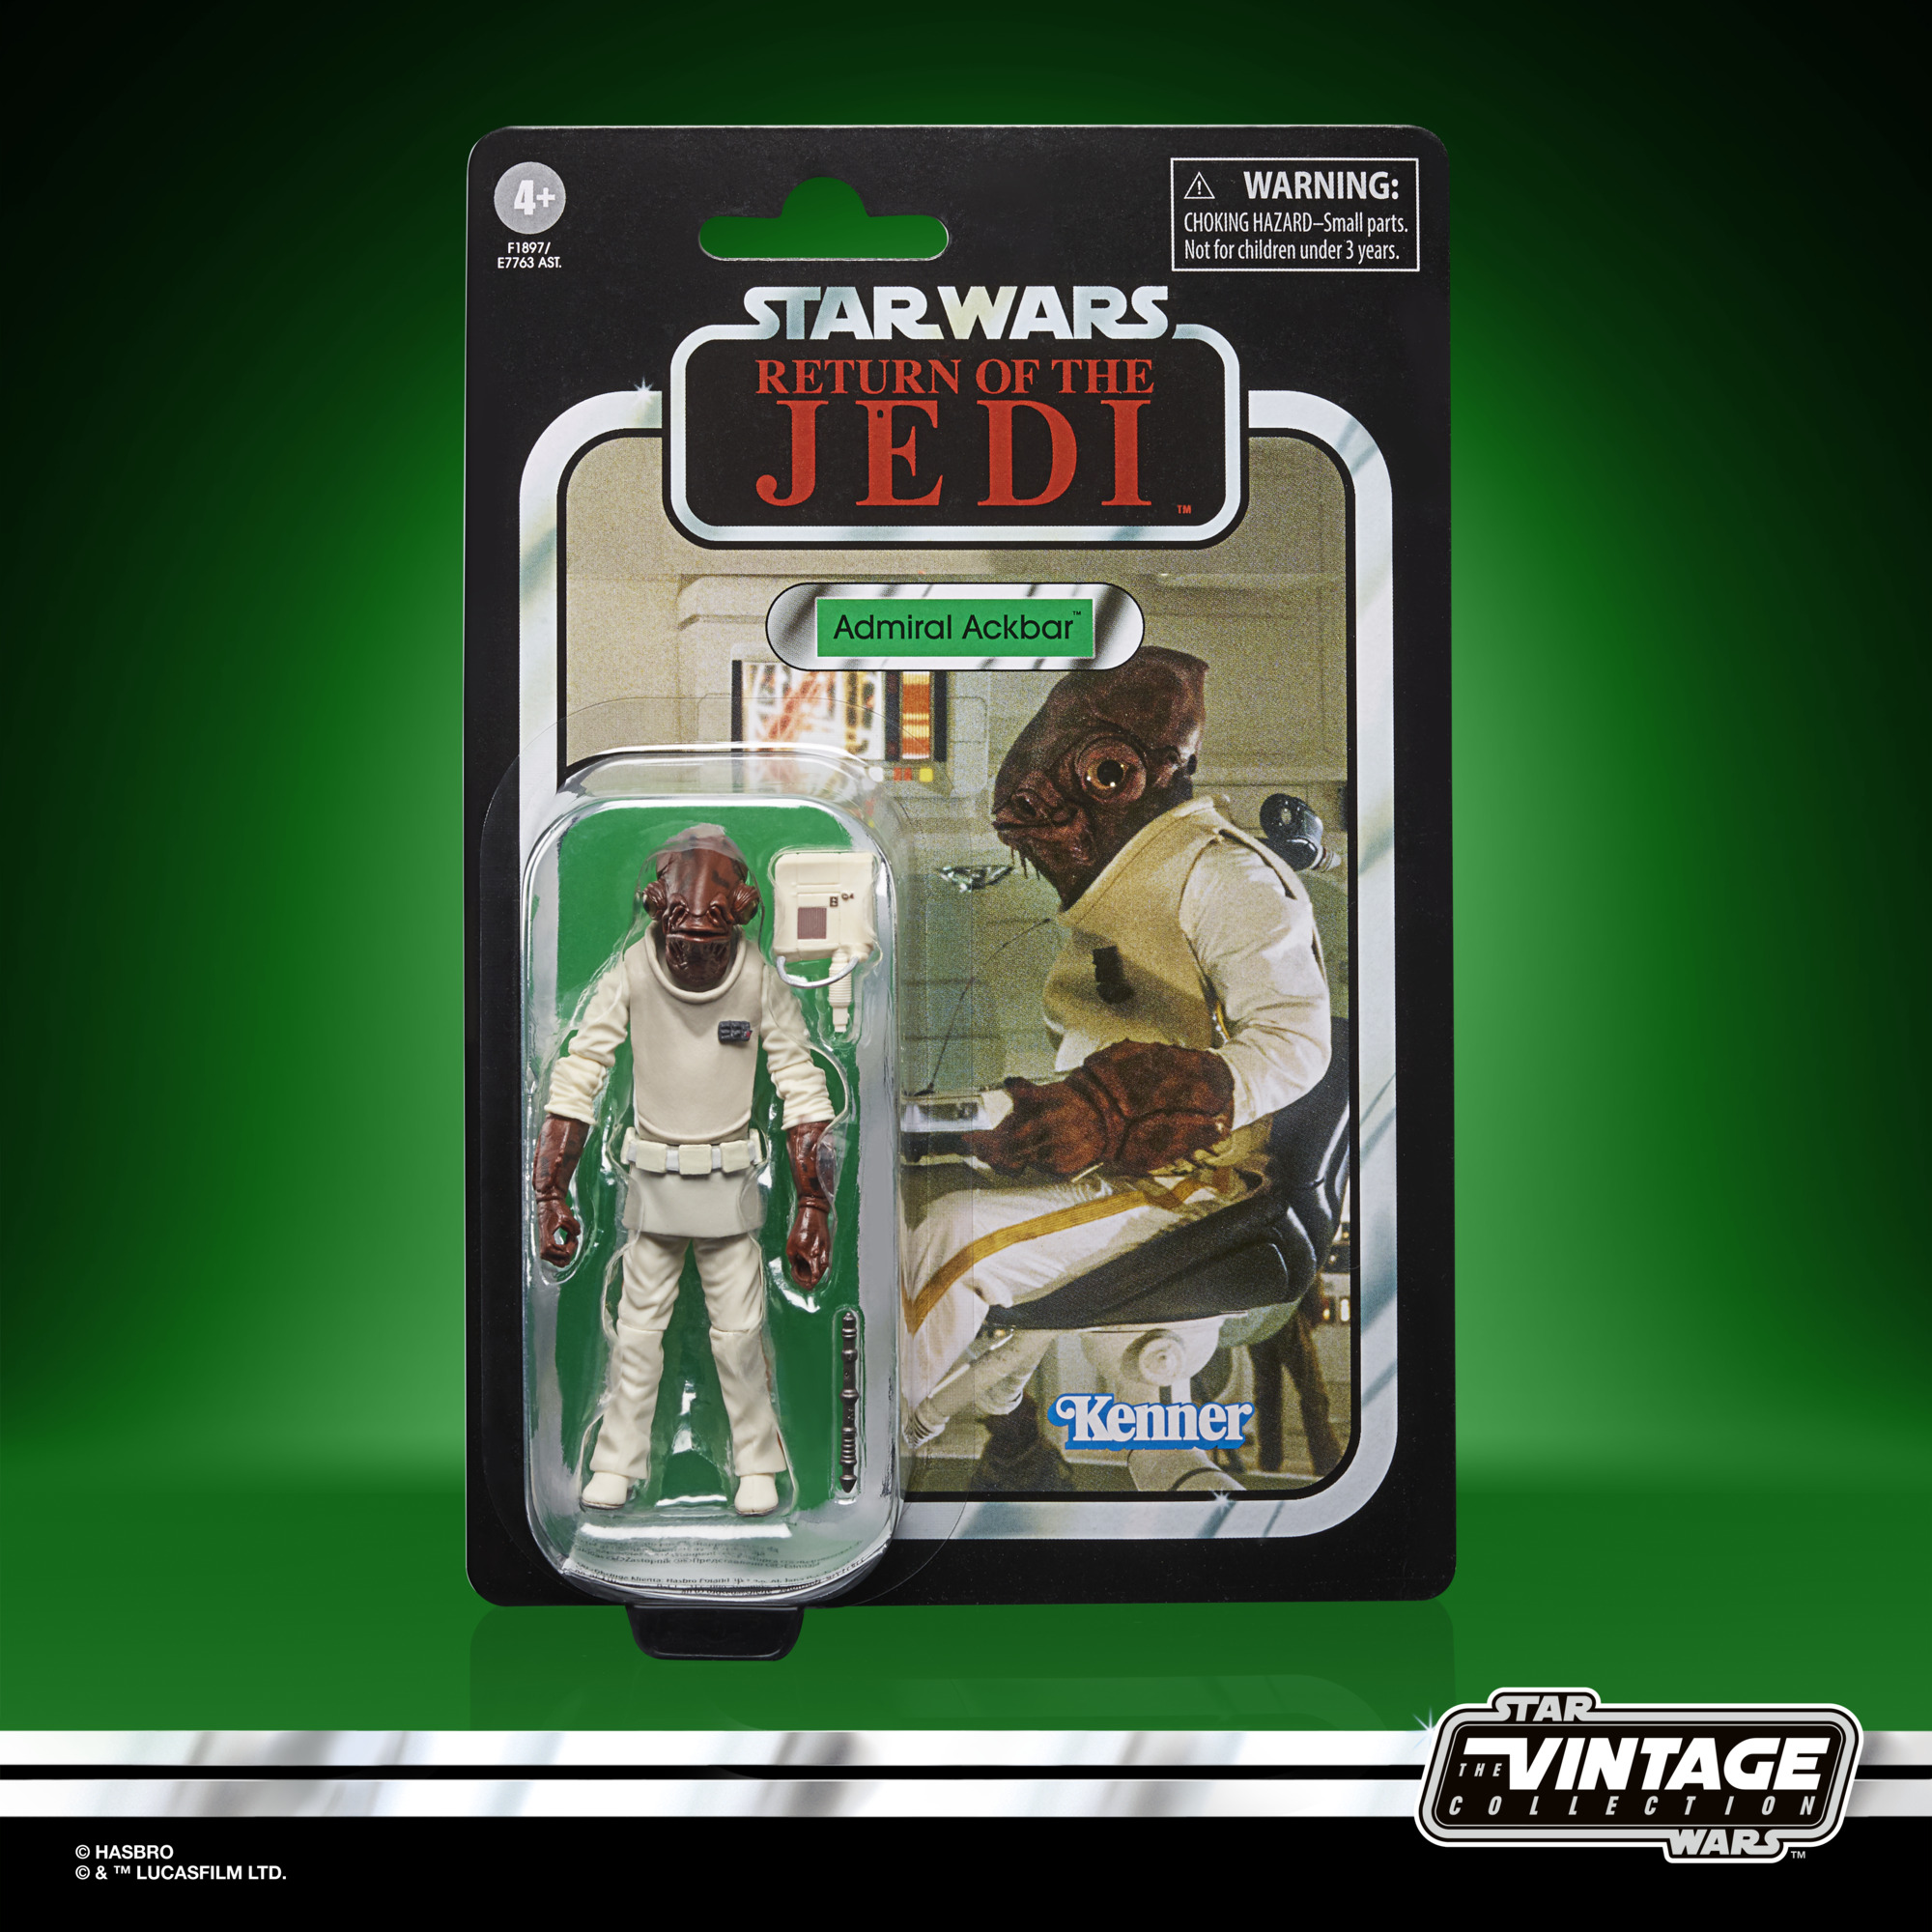 Star Wars The Vintage Collection Admiral Ackbar 3 3/4-Inch Action Figure F1897 5010993860685